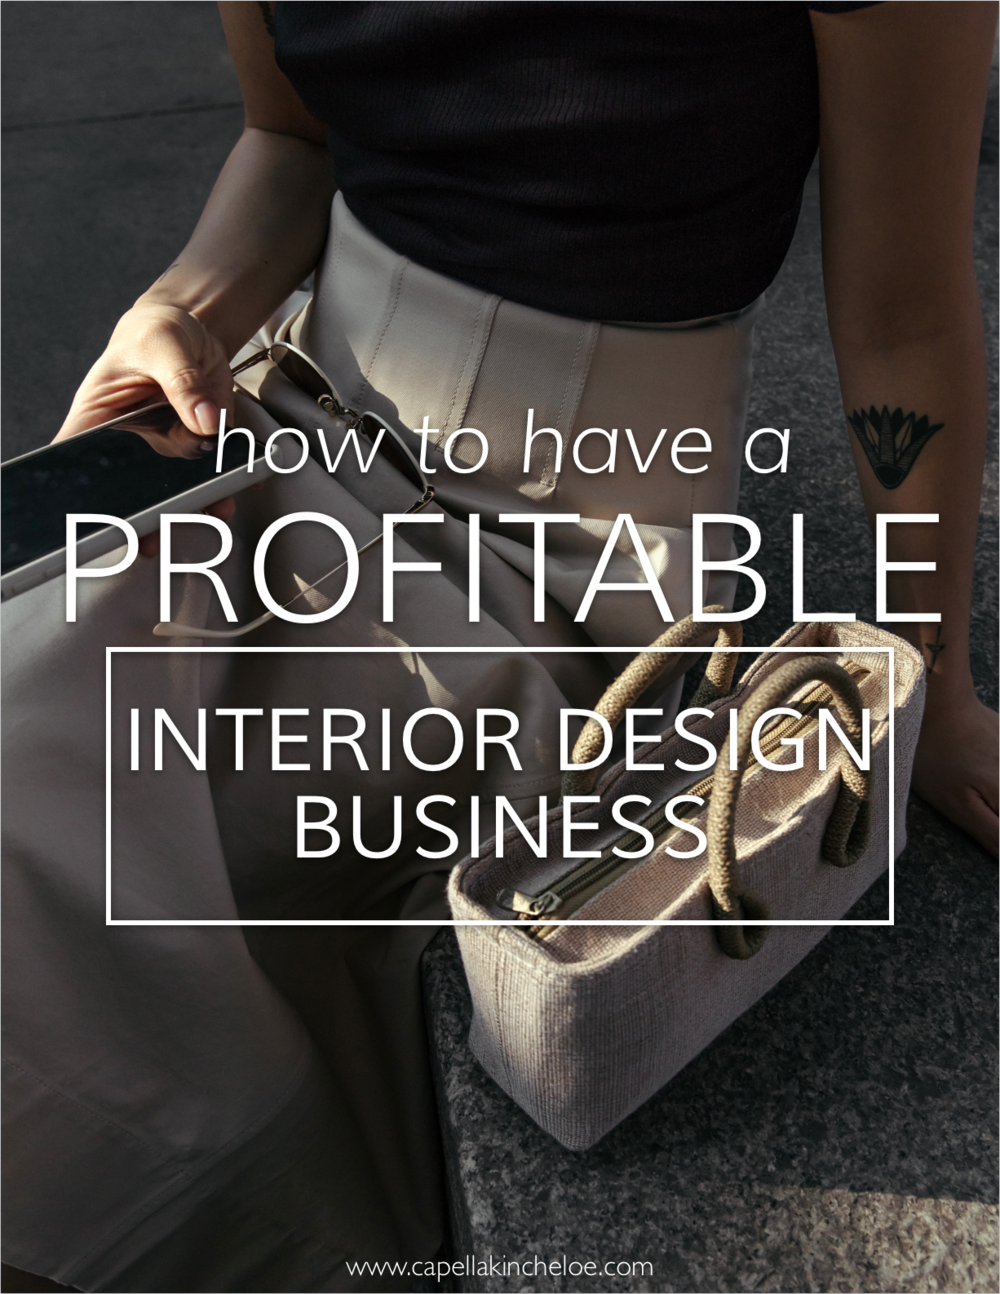 Do you want a profitable interior design business? Are you sure? Read this. #interiordesignbusiness #cktradesecrets #profitablebusiness #interiordesigners